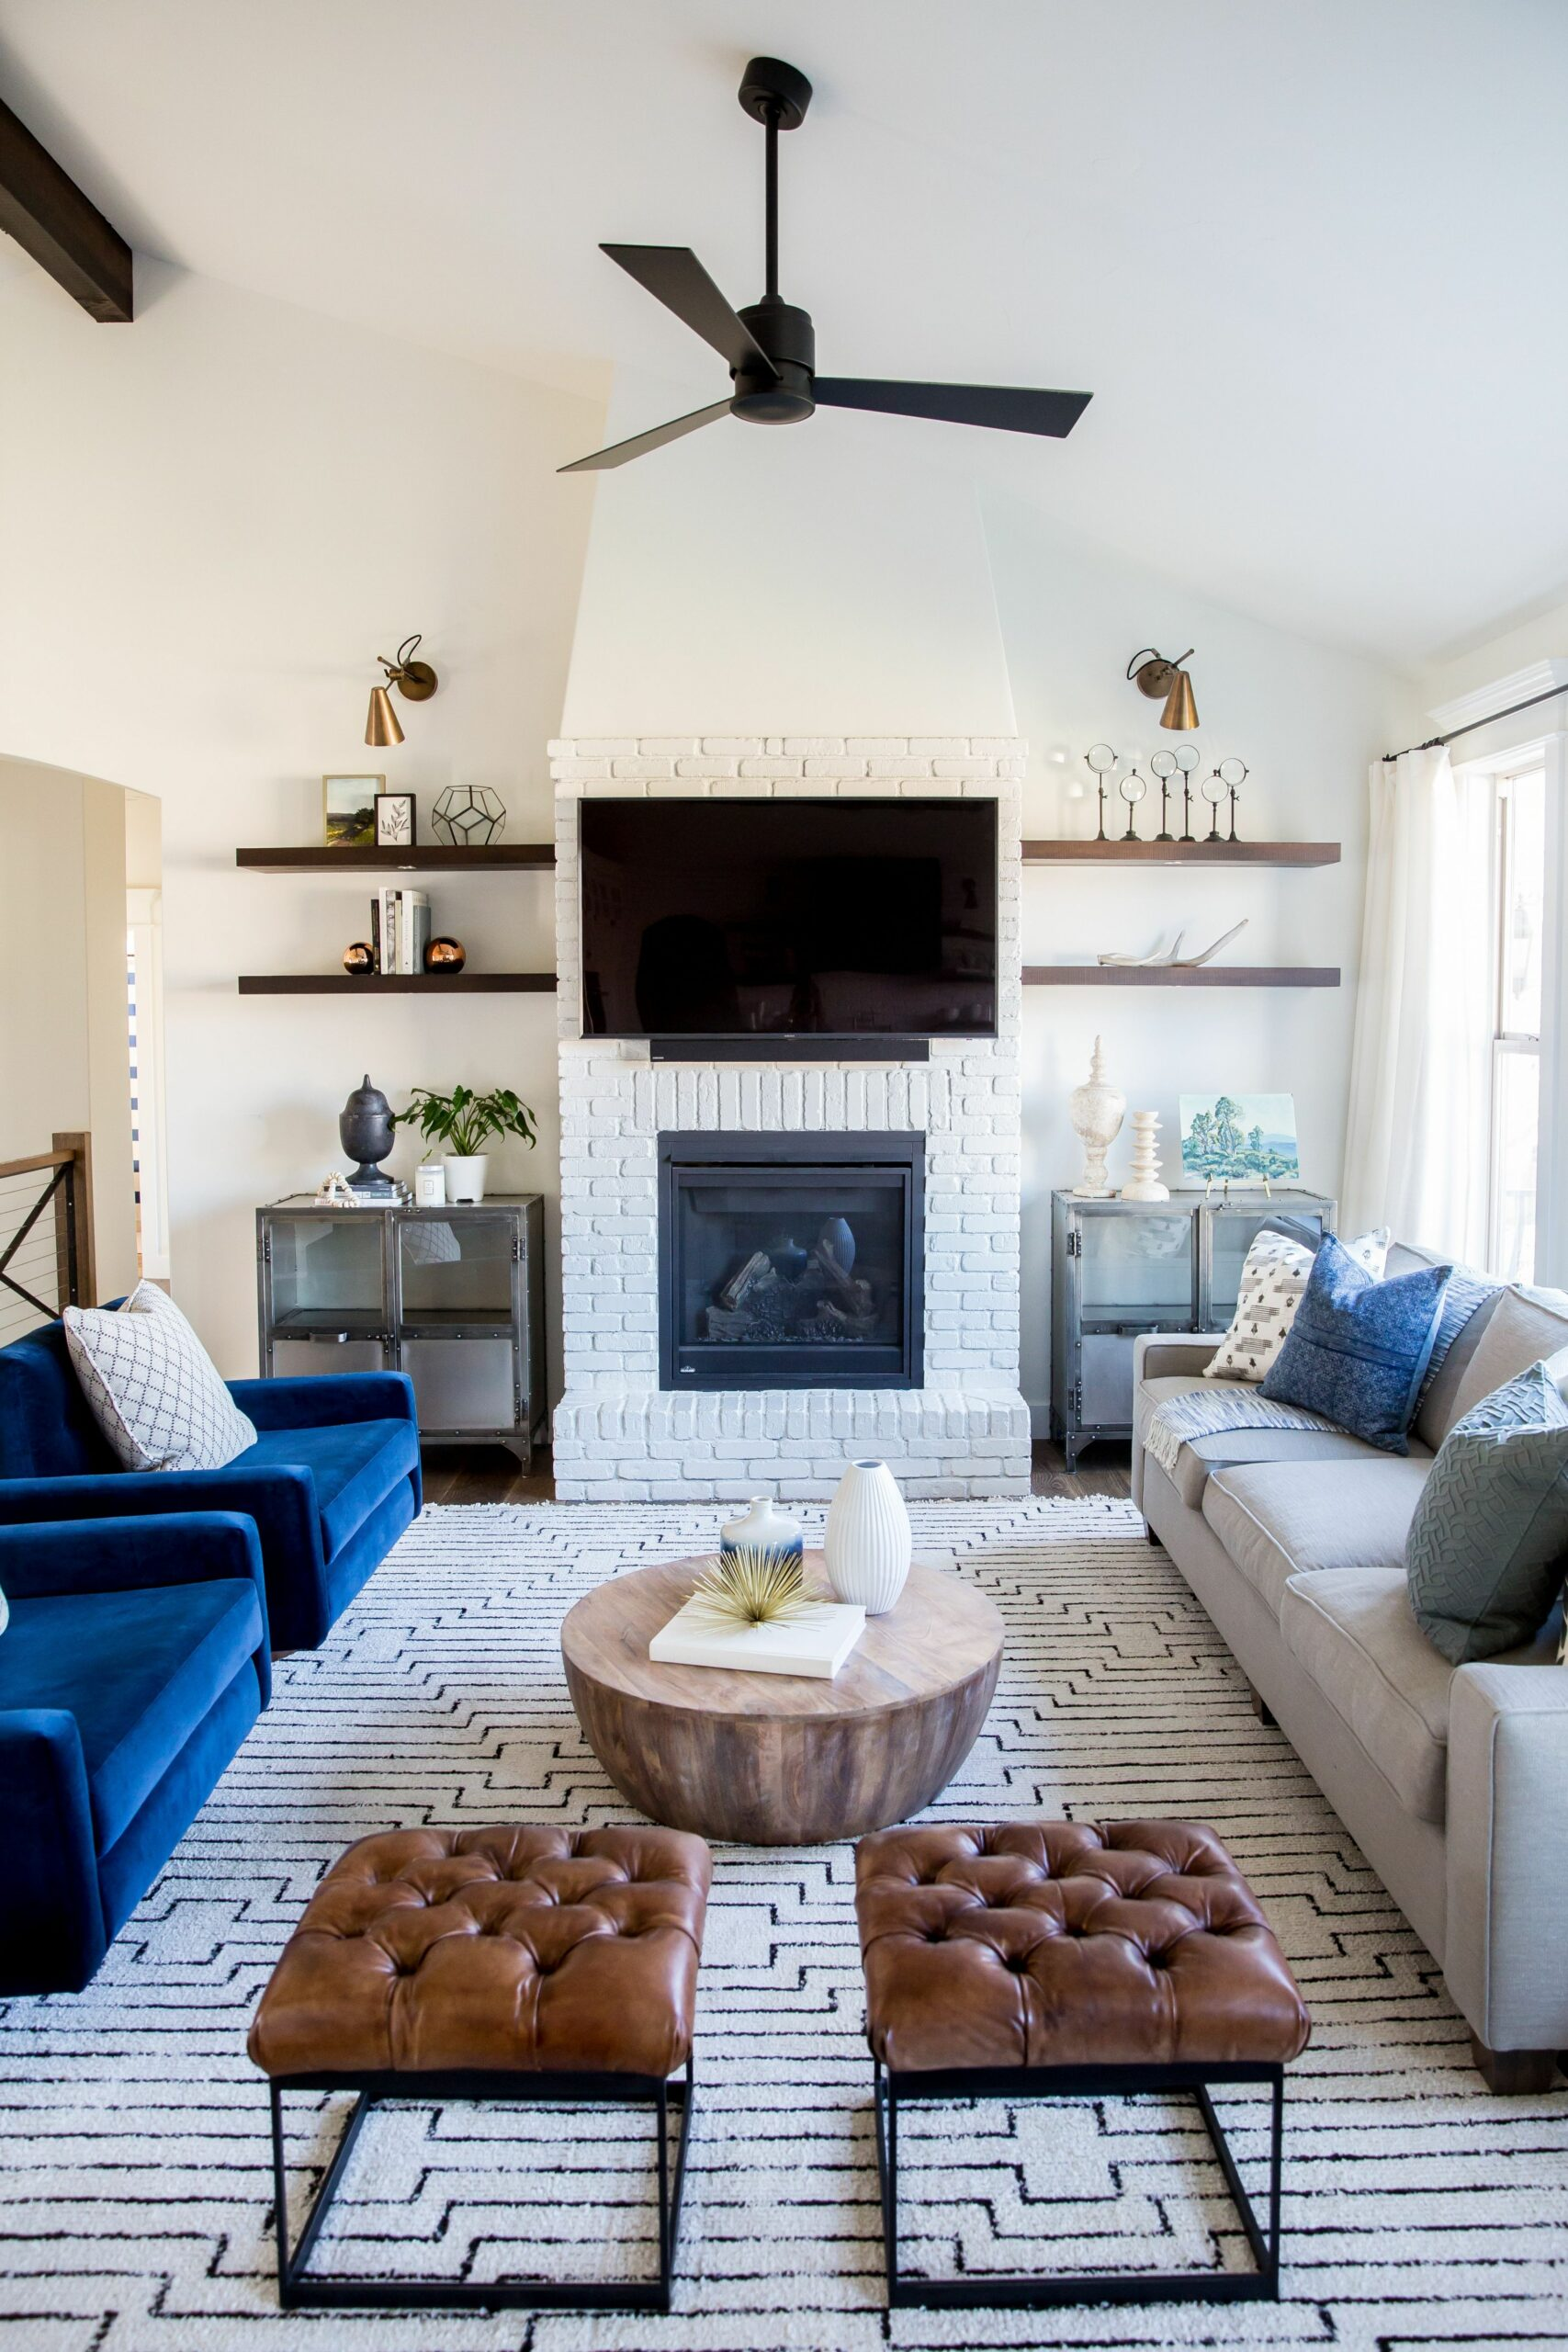 Lehi Remodel Reveal (With images) | Rectangular living rooms ..